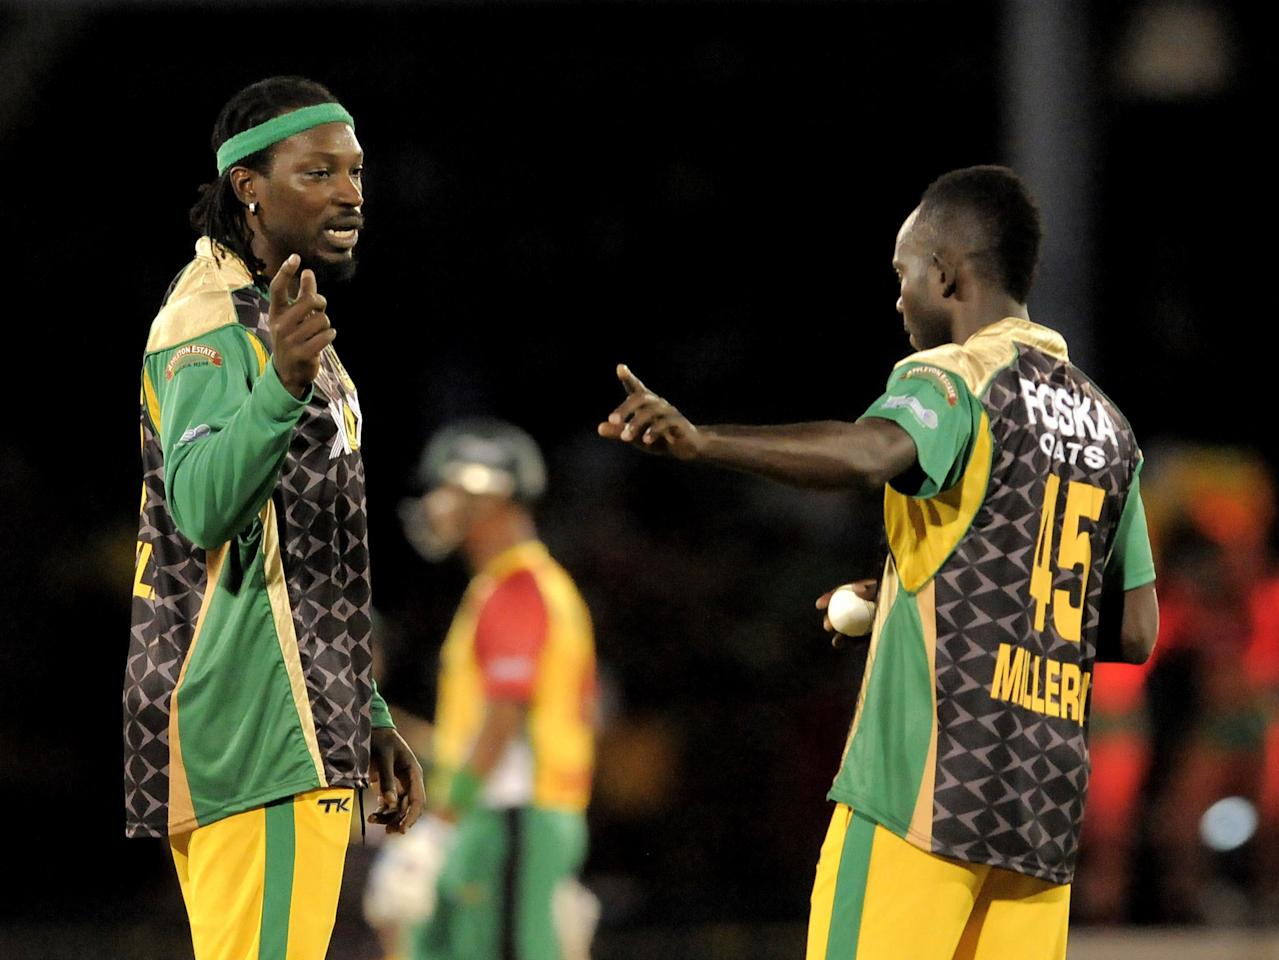 PORT OF SPAIN, TRINIDAD AND TOBAGO - AUGUST 24:  Captain Chris Gayle (L) of Jamaica Tallawahs sets the field for Nikita Miller (R) during the Final of the Caribbean Premier League between Guyana Amazon Warriors v Jamaica Tallawahs at Queens Park Oval on August 24, 2013 in Port of Spain, Trinidad and Tobago. (Photo by Randy Brooks/Getty Images Latin America for CPL)